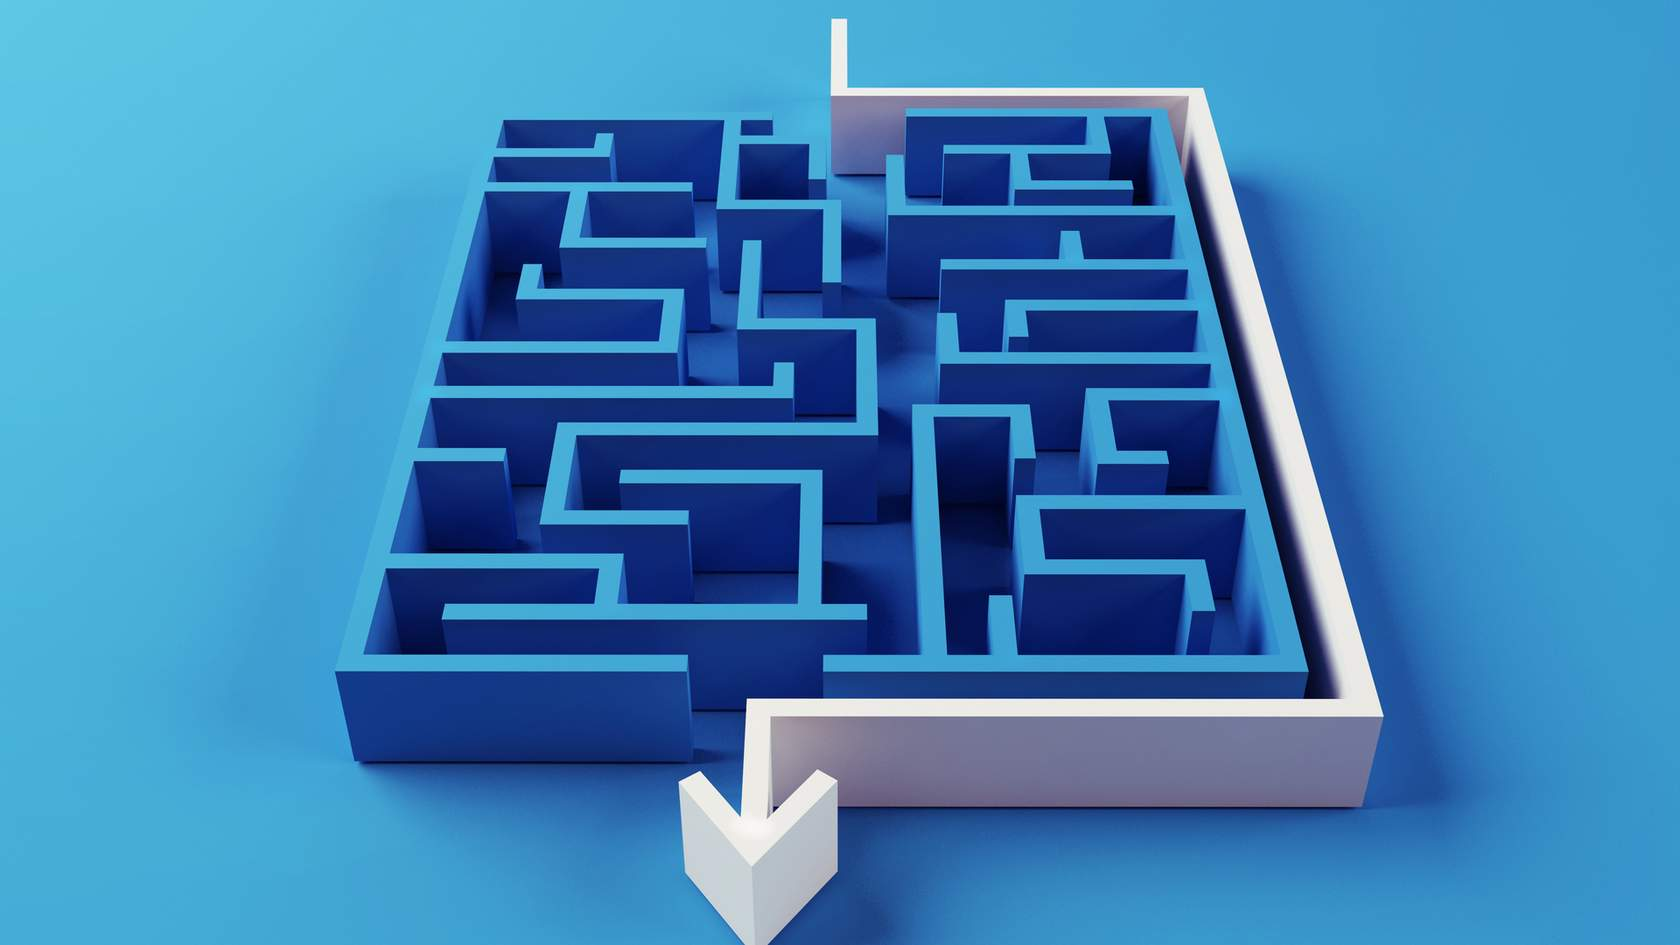 A maze and direction